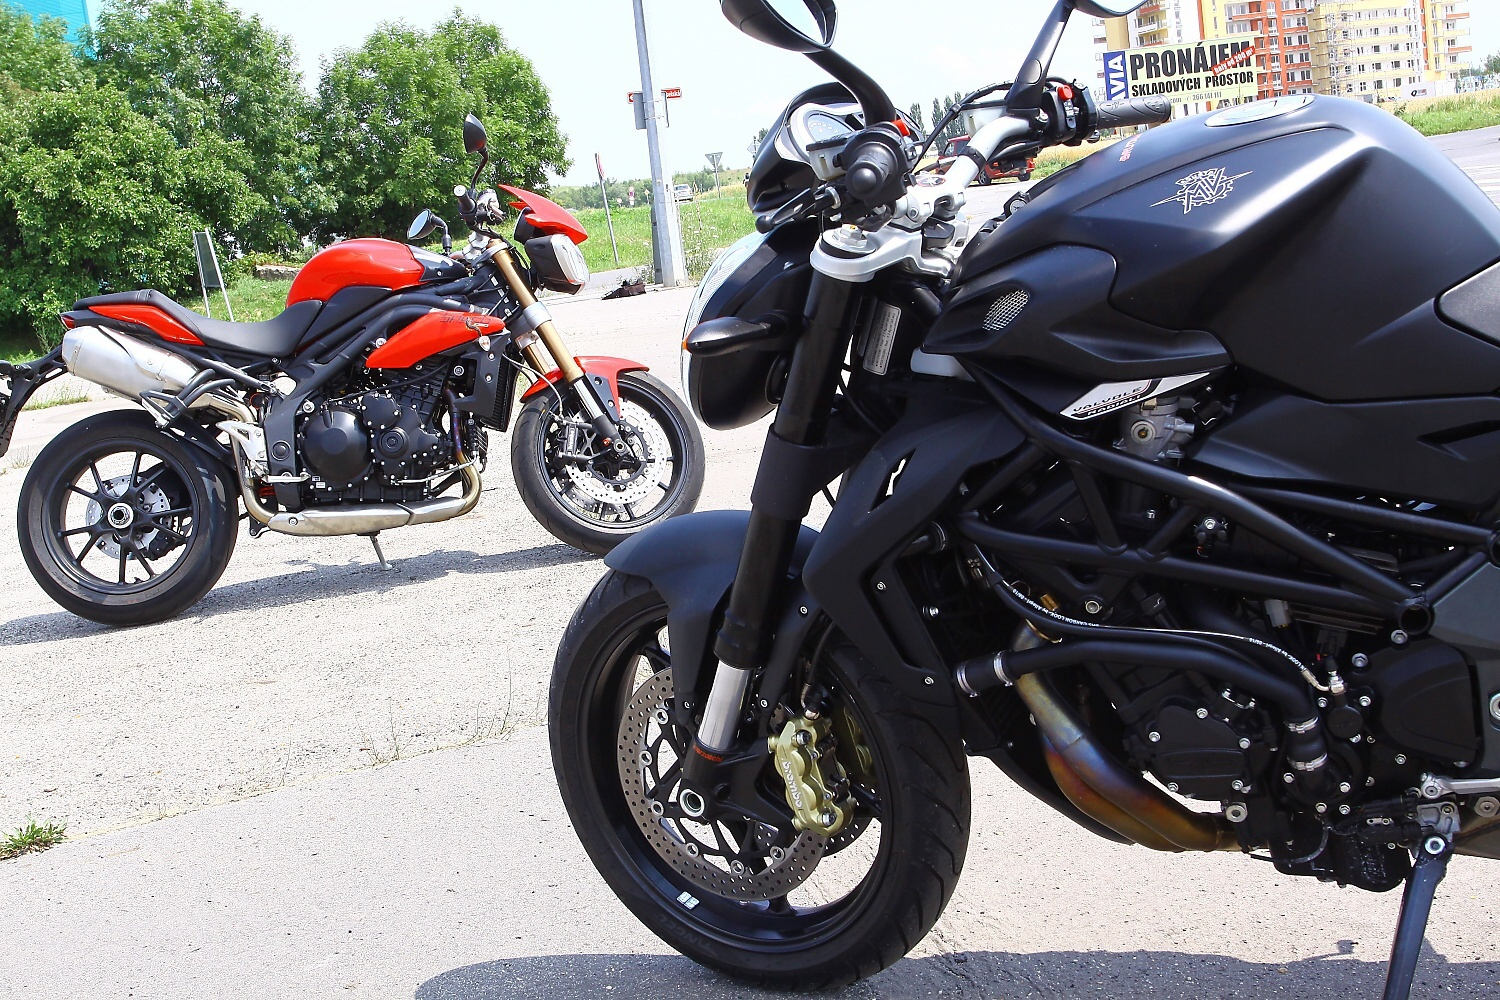 MV Agusta Brutale 920 vs. Triumph Speed Triple